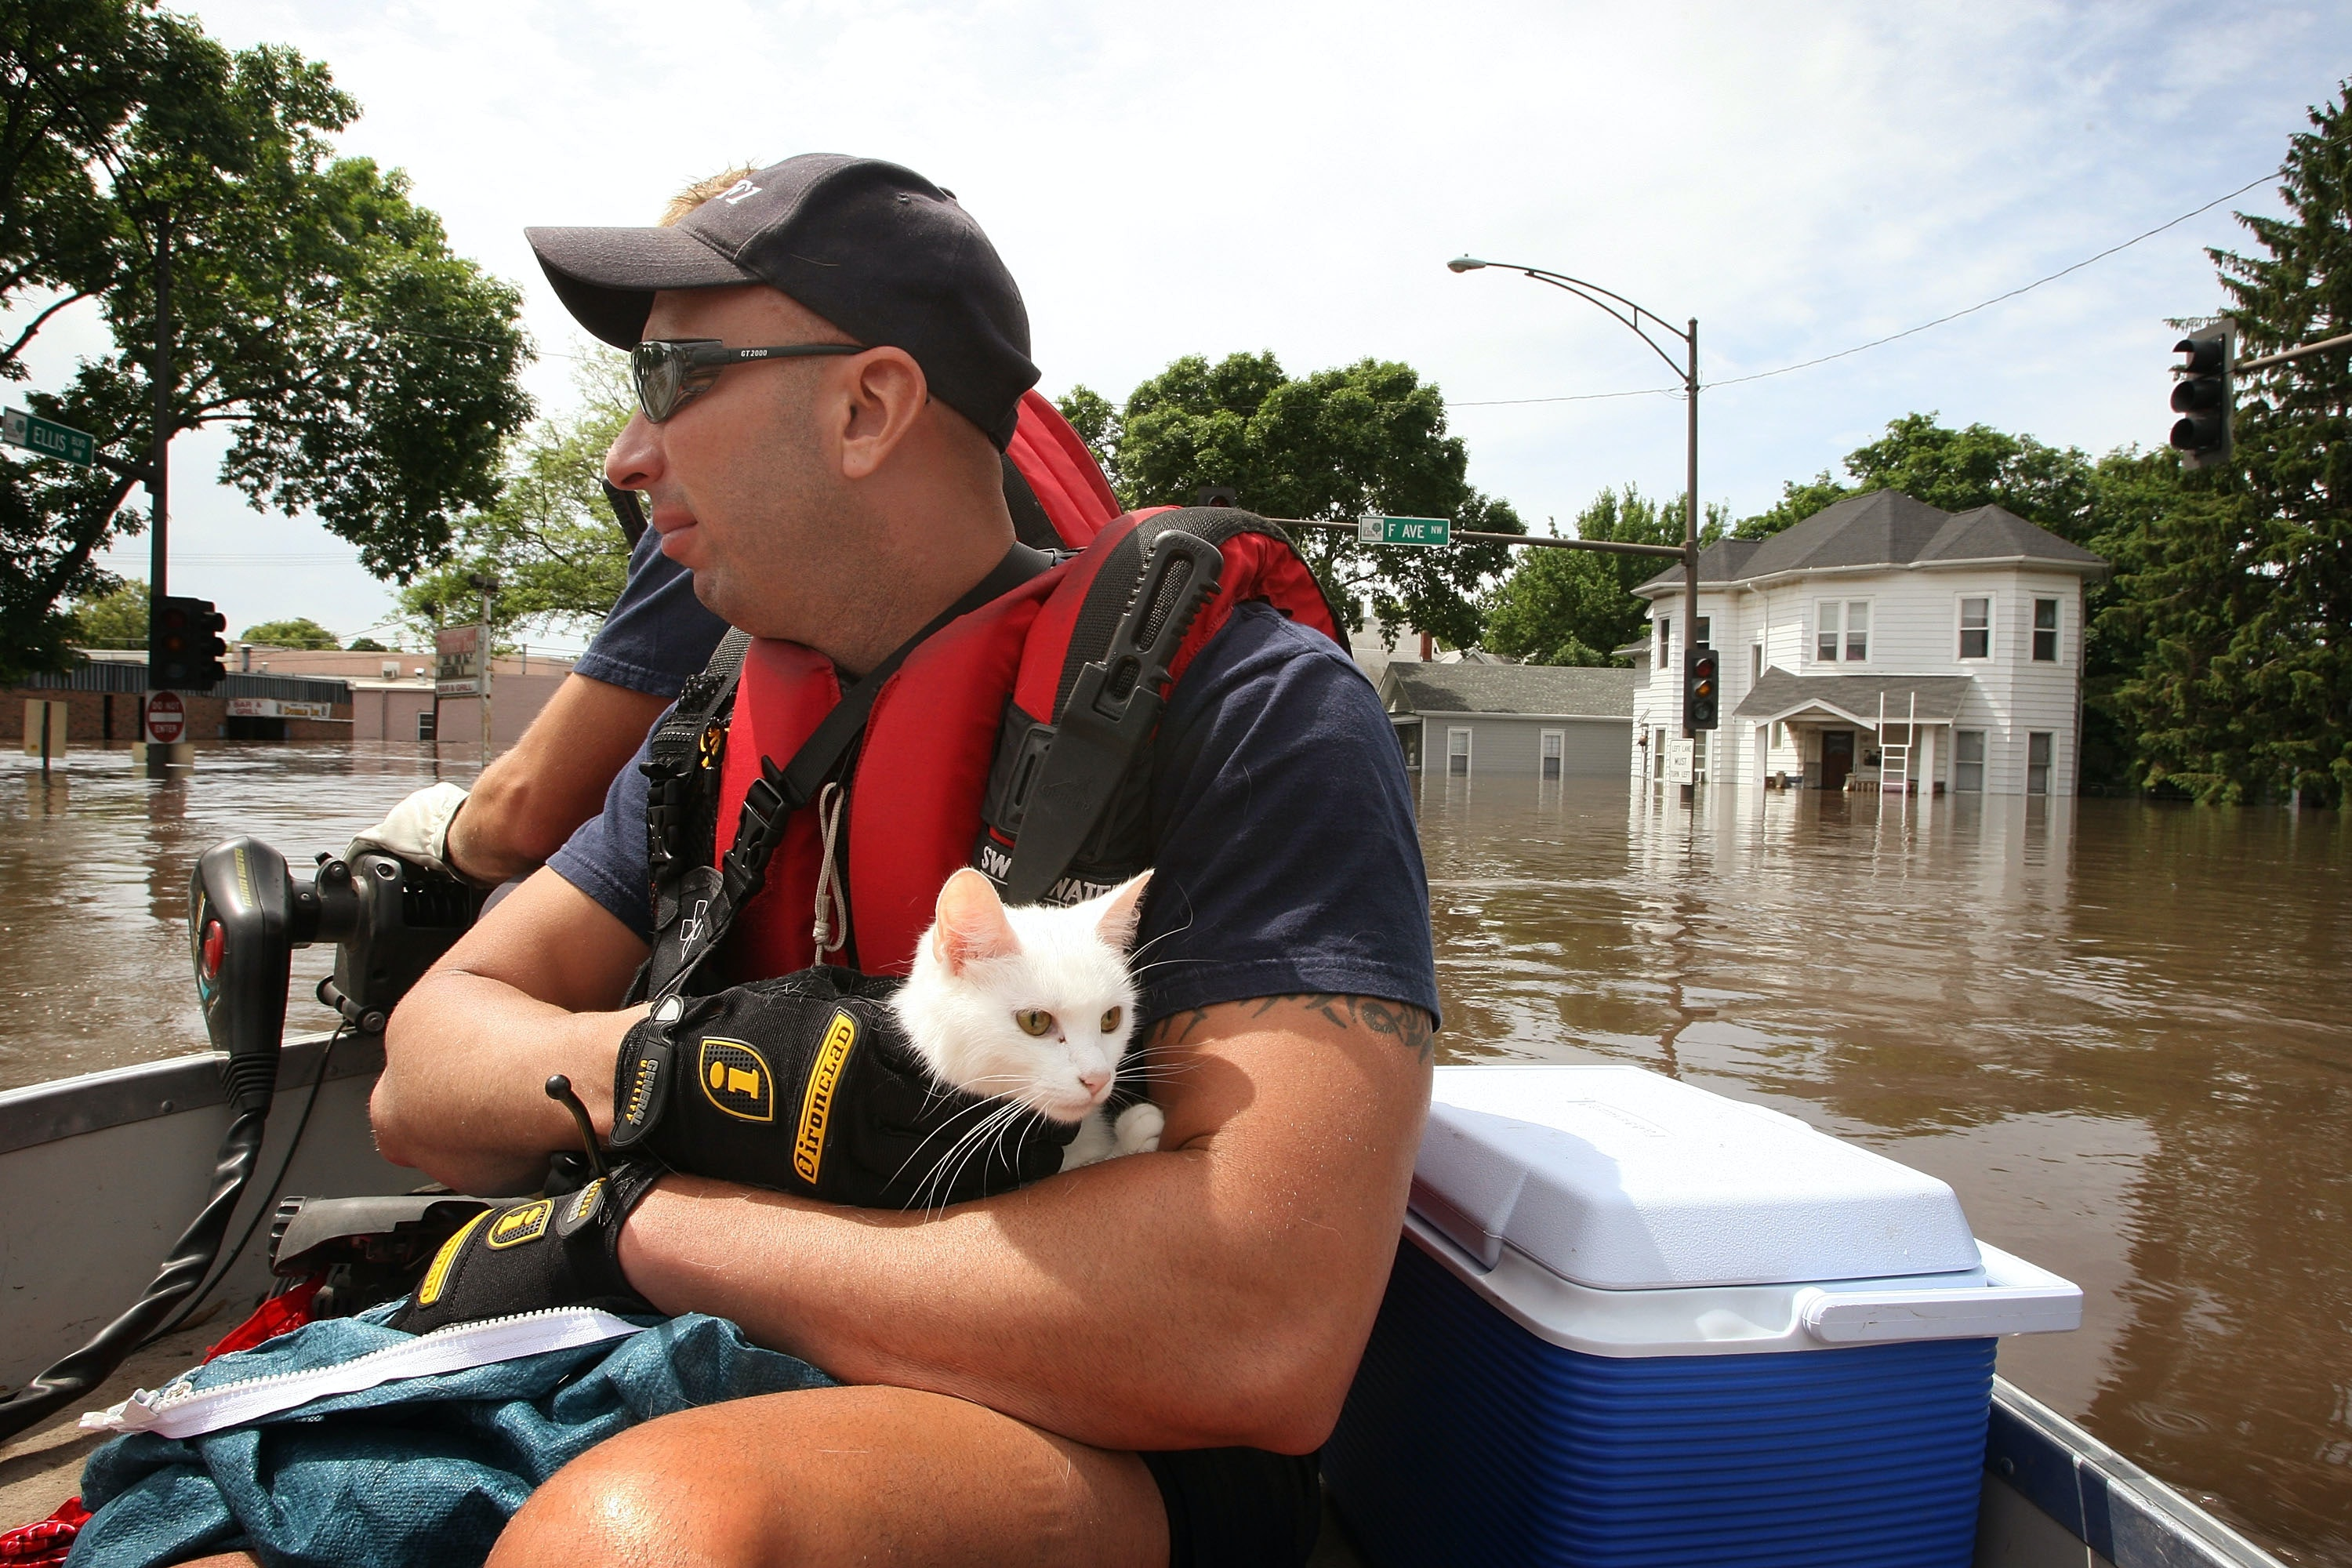 How To Help Stray Animals Survive Hurricane Harvey - Some people tied their dogs up and left them to die during the flood